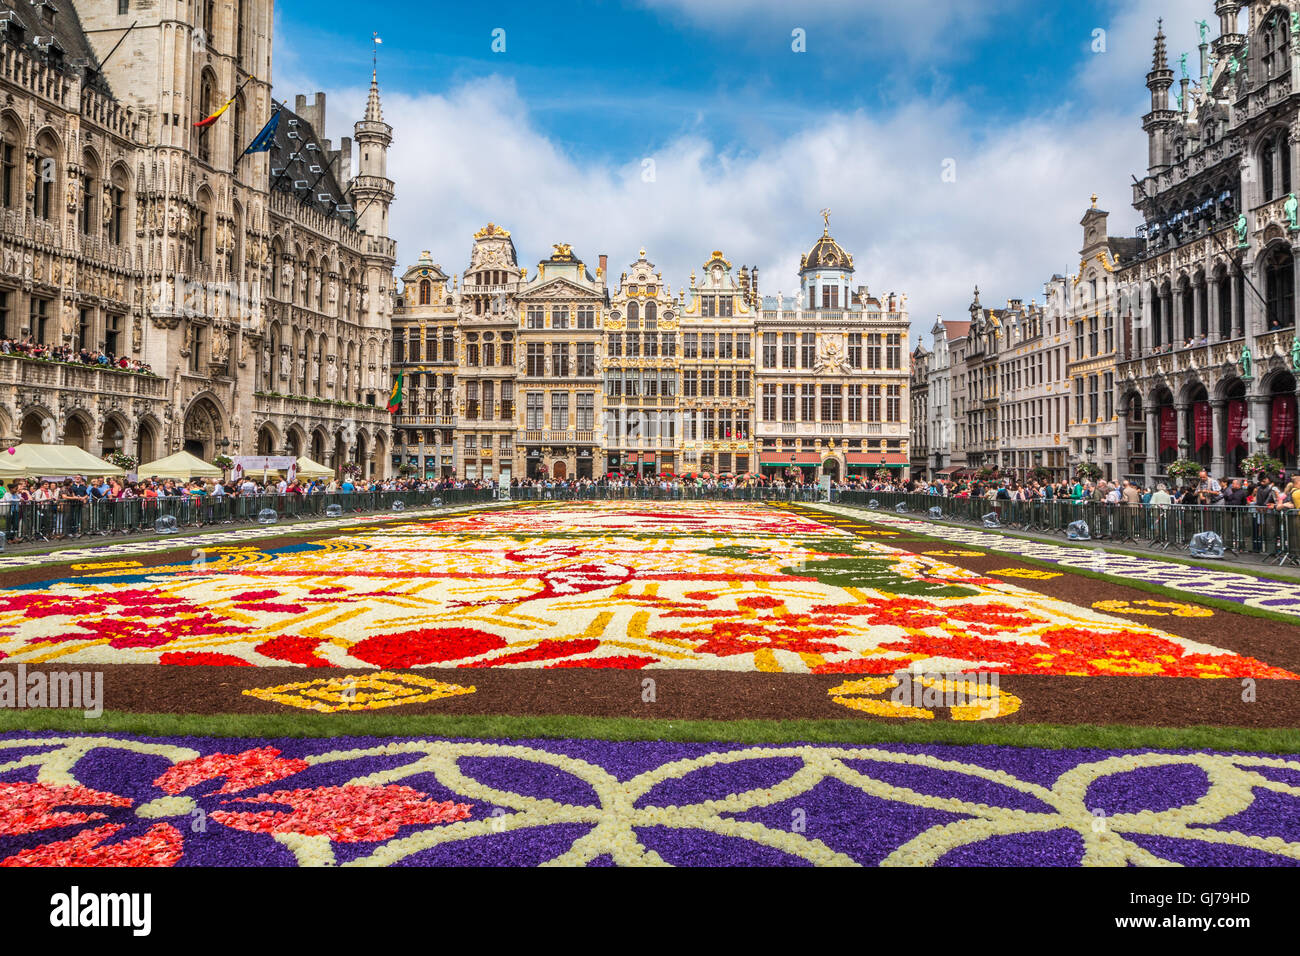 Blume Des Lebens Teppich Brussels Grand Place Flower Carpet Stockfotos And Brussels